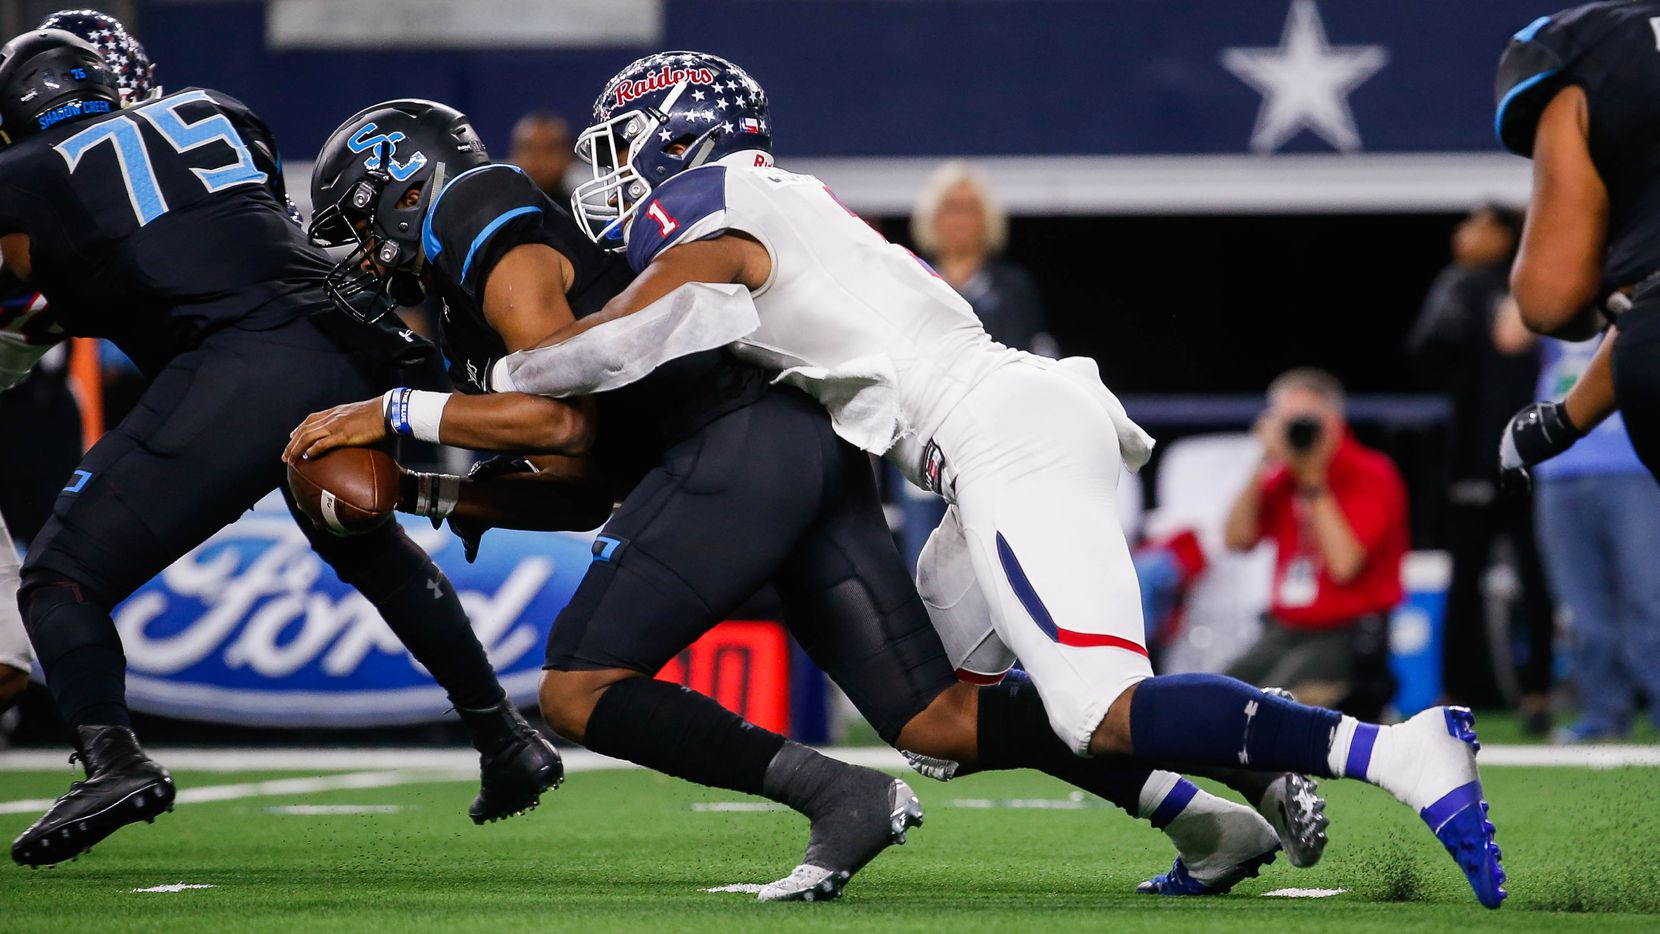 Denton Ryan's defensive lineman Ja'Tavion Sanders (1) sacks Alvin Shadow Creek's quaterback Kyron Drones in the first quarter of a Class 5A Division I state championship game at the AT&T Stadium in Arlington, on Friday, December 20, 2019. Shadow Creek leads at halftime 14-8. (Juan Figueroa/The Dallas Morning News)